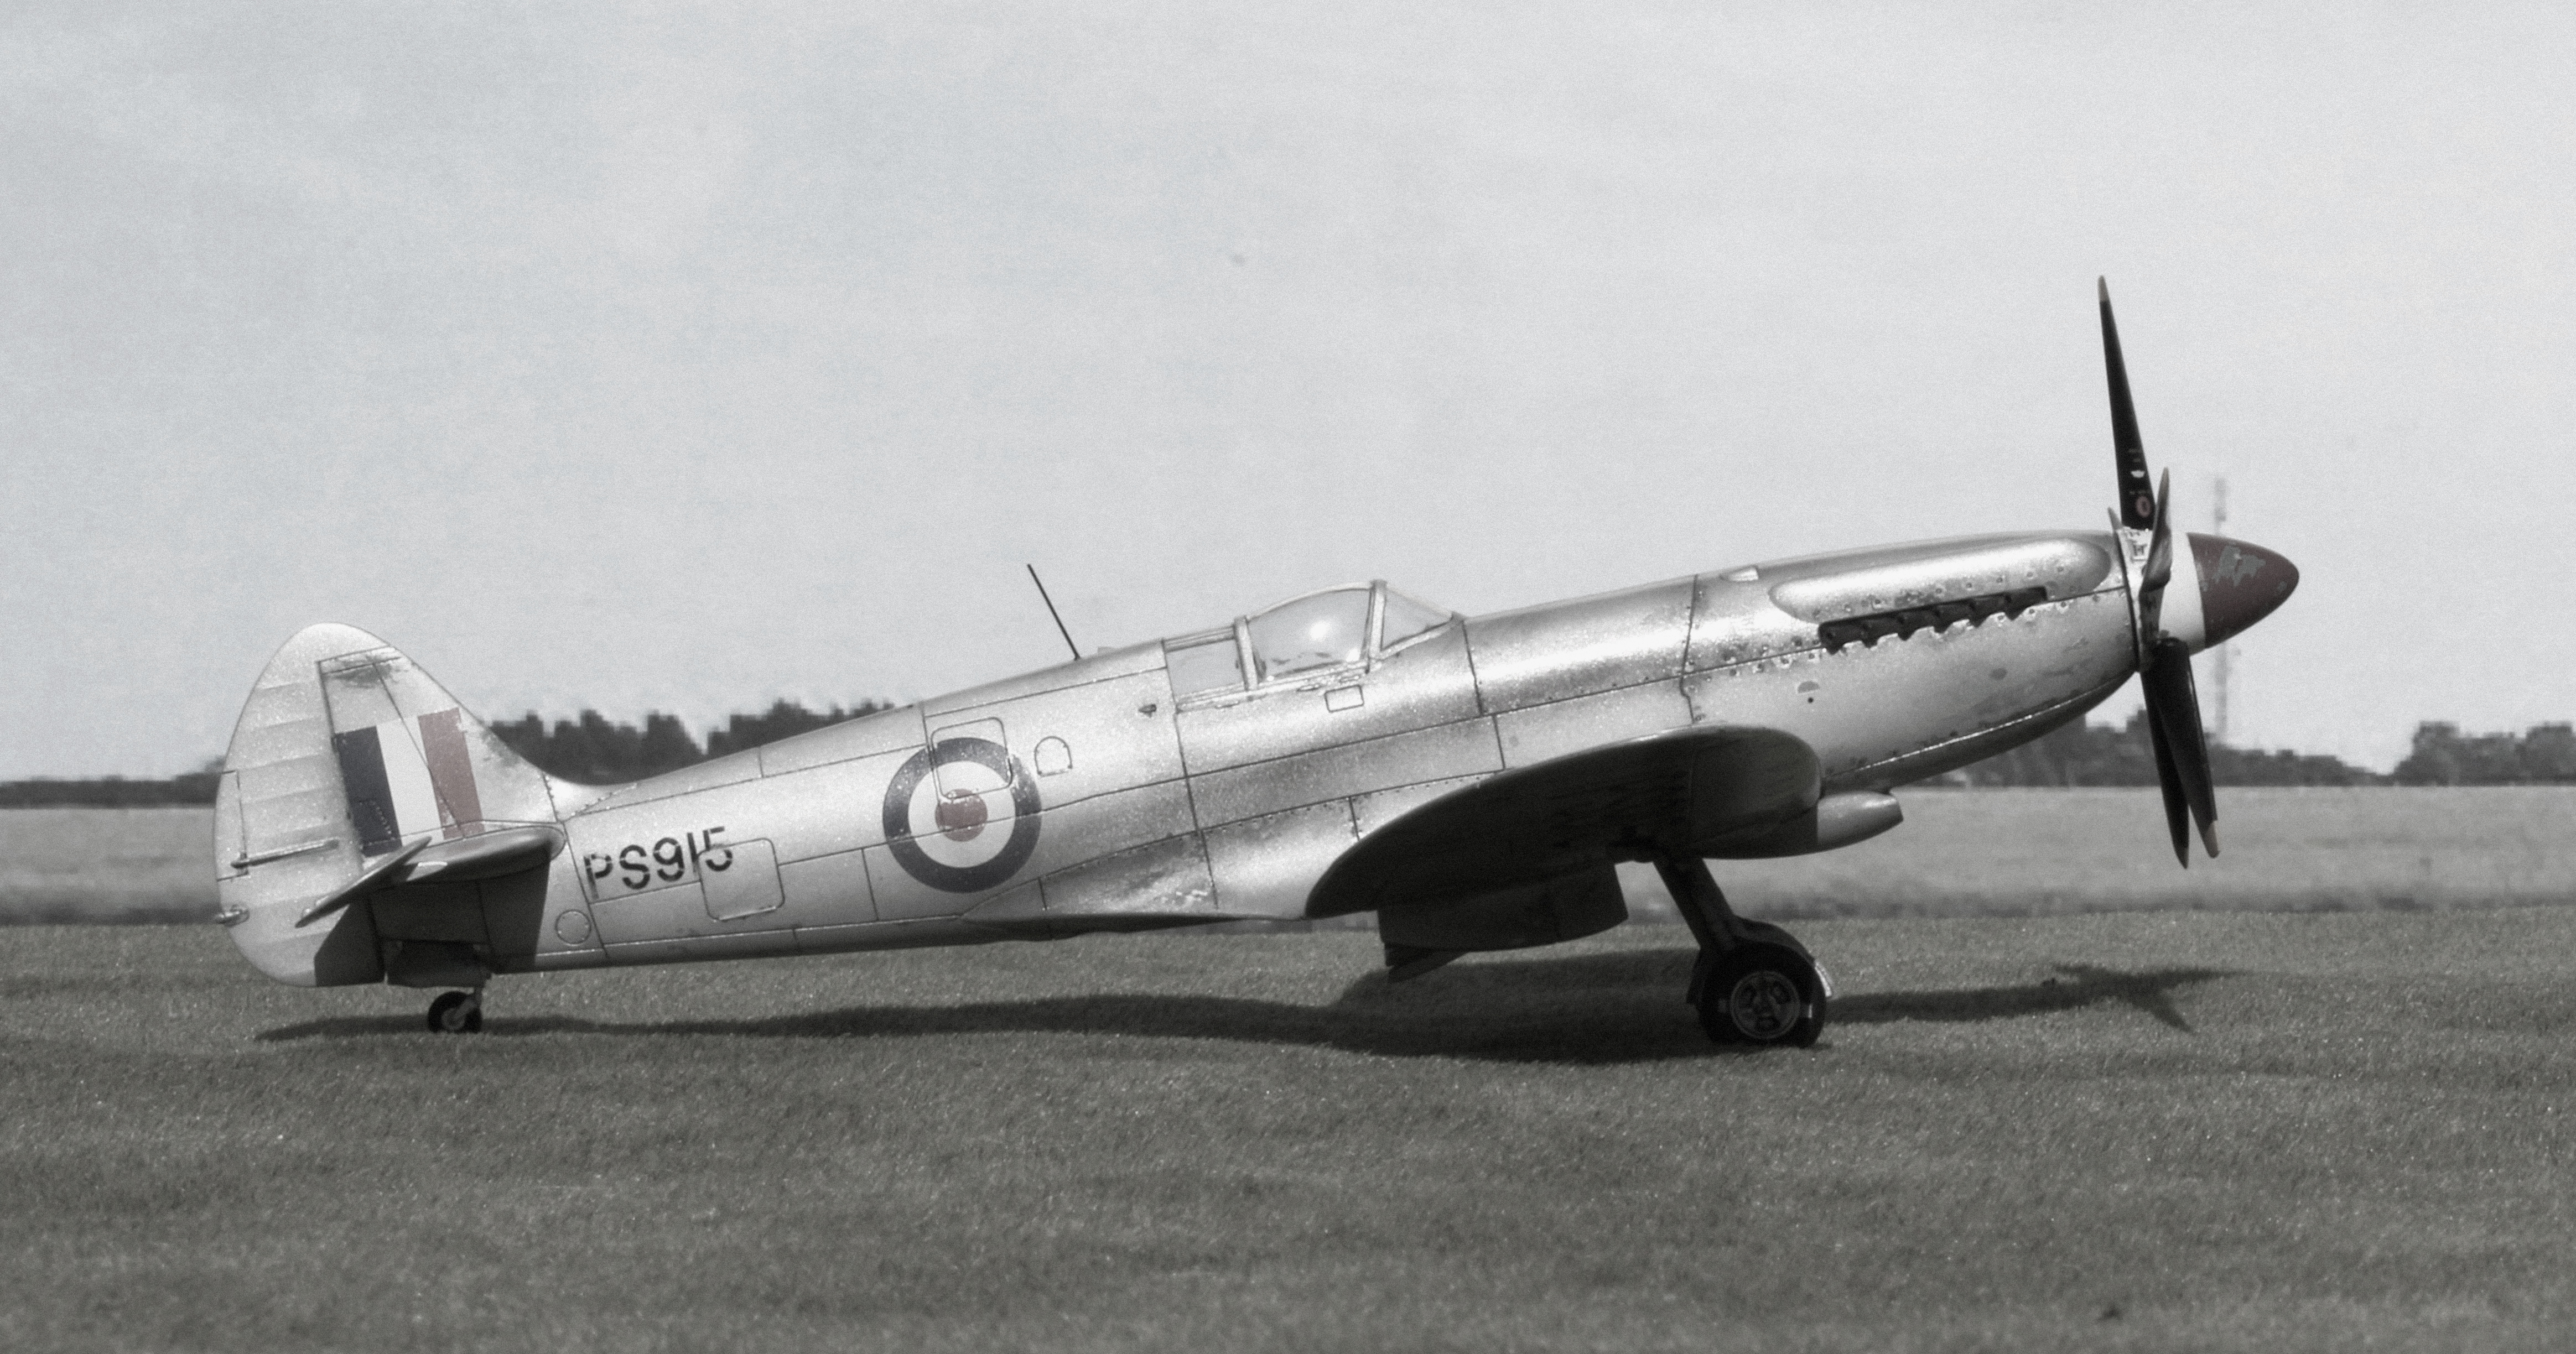 Black and White edited image of Spitfire Mk XIX